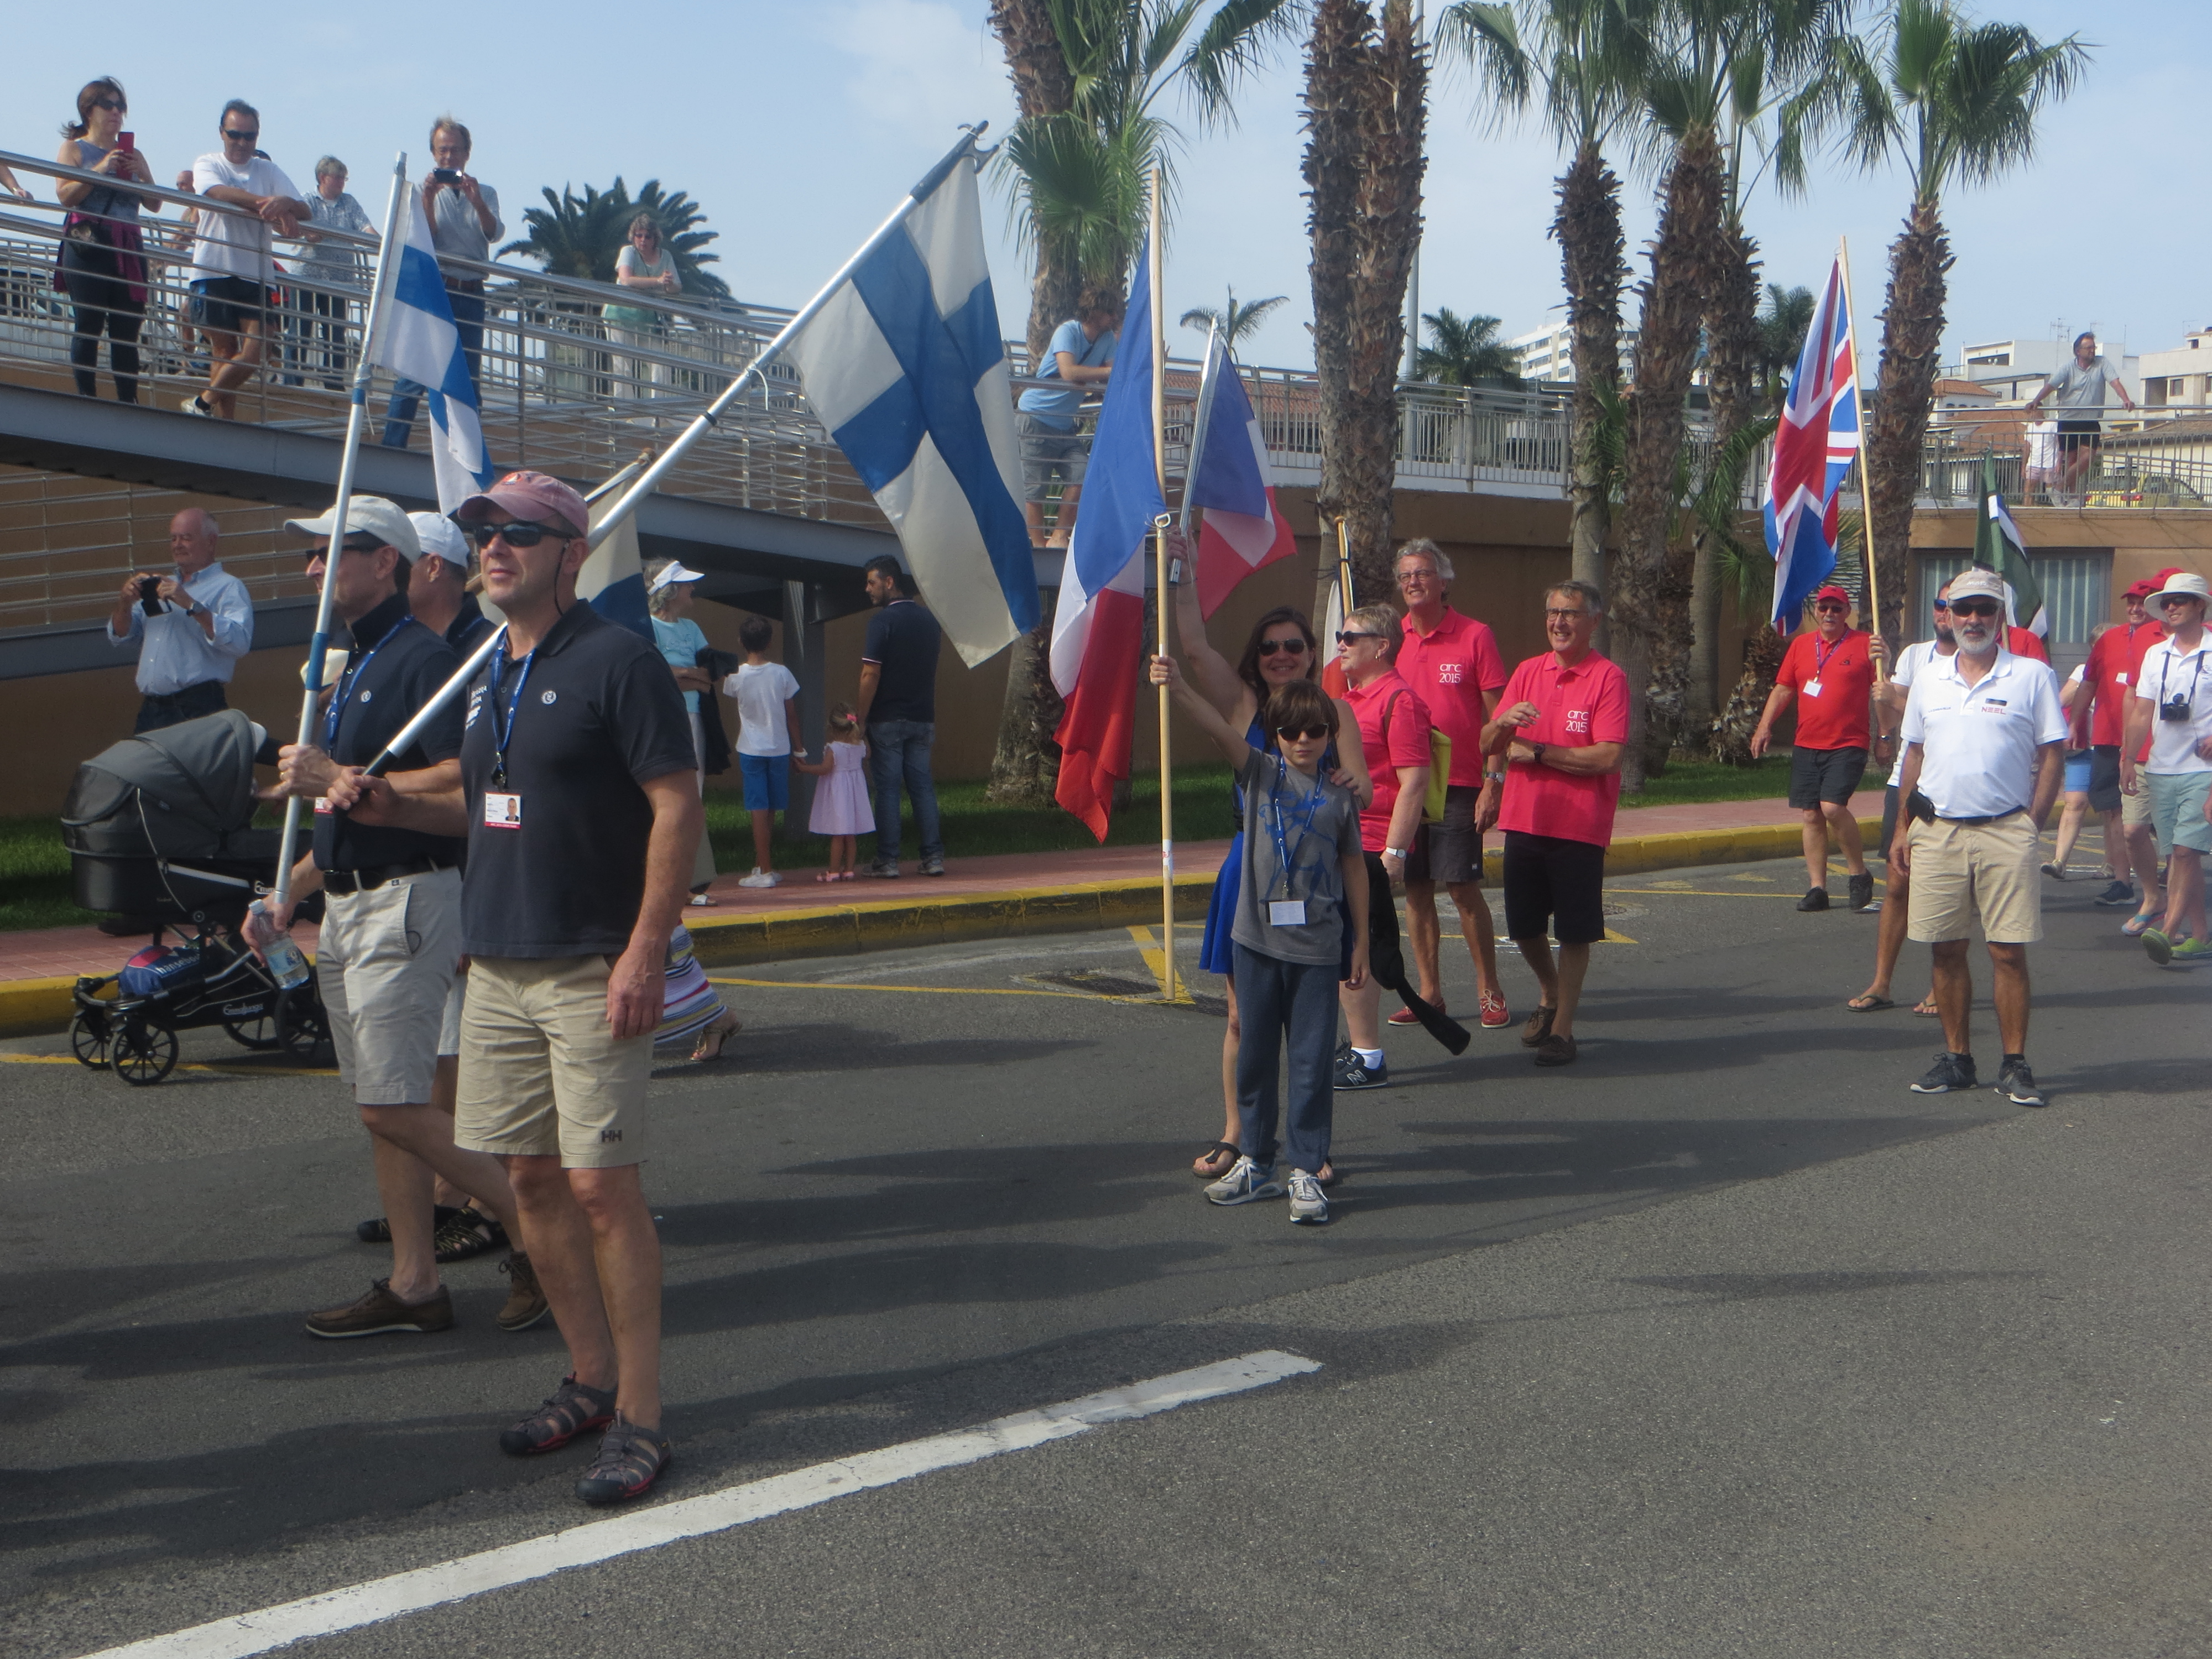 las palmas mathis drapeau parade arc 2 big